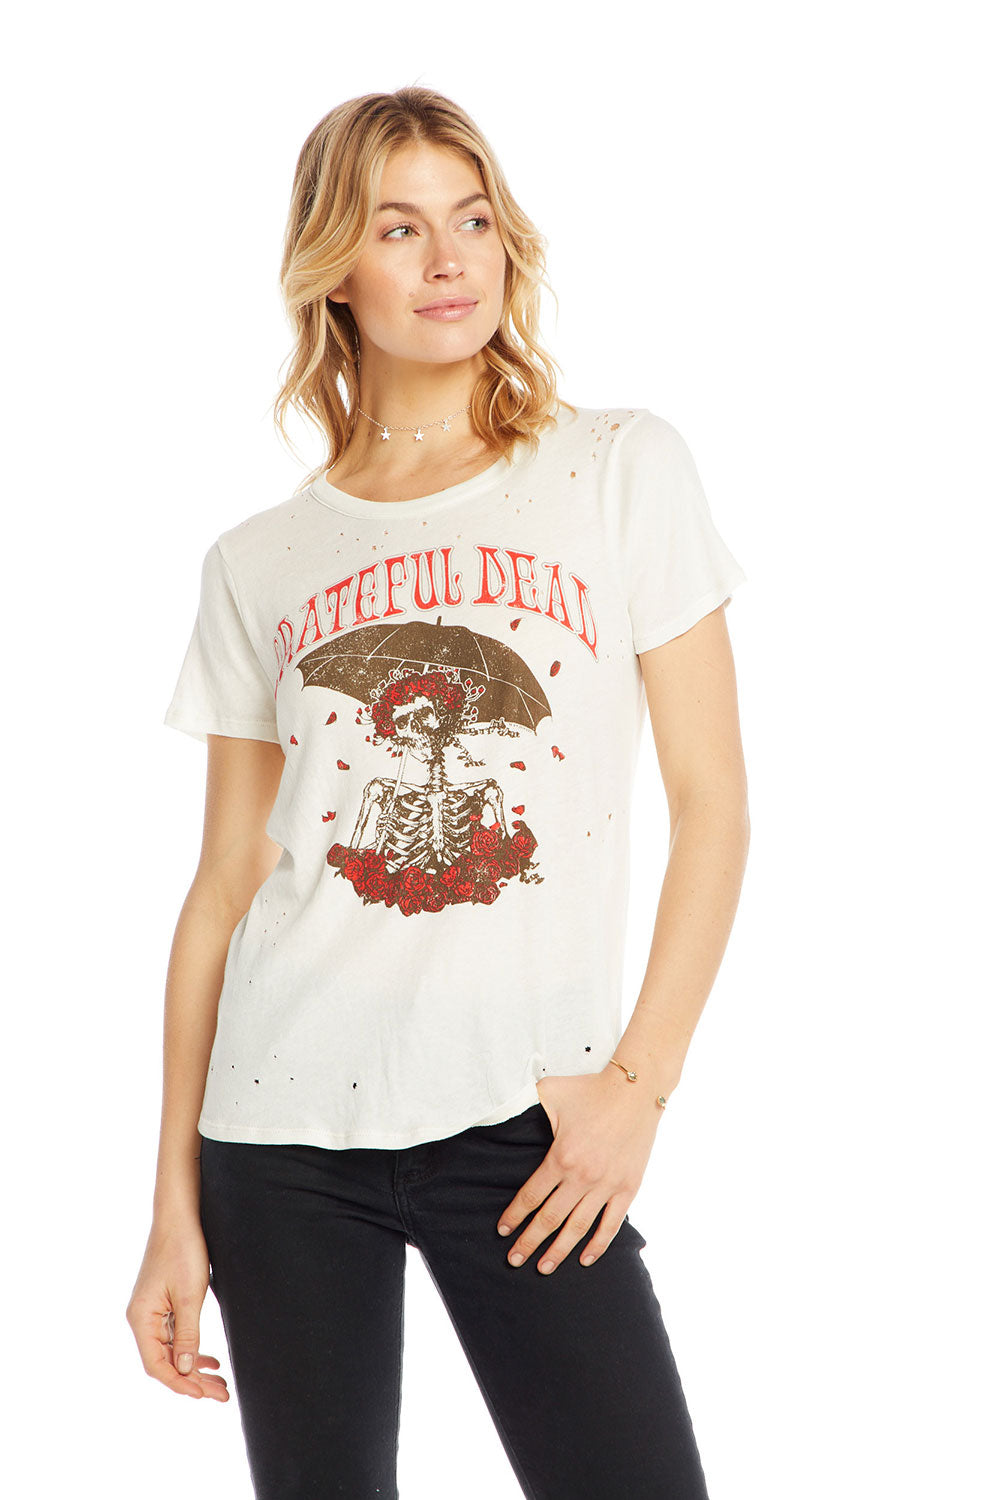 Grateful Dead - Raining Roses WOMENS chaserbrand4.myshopify.com